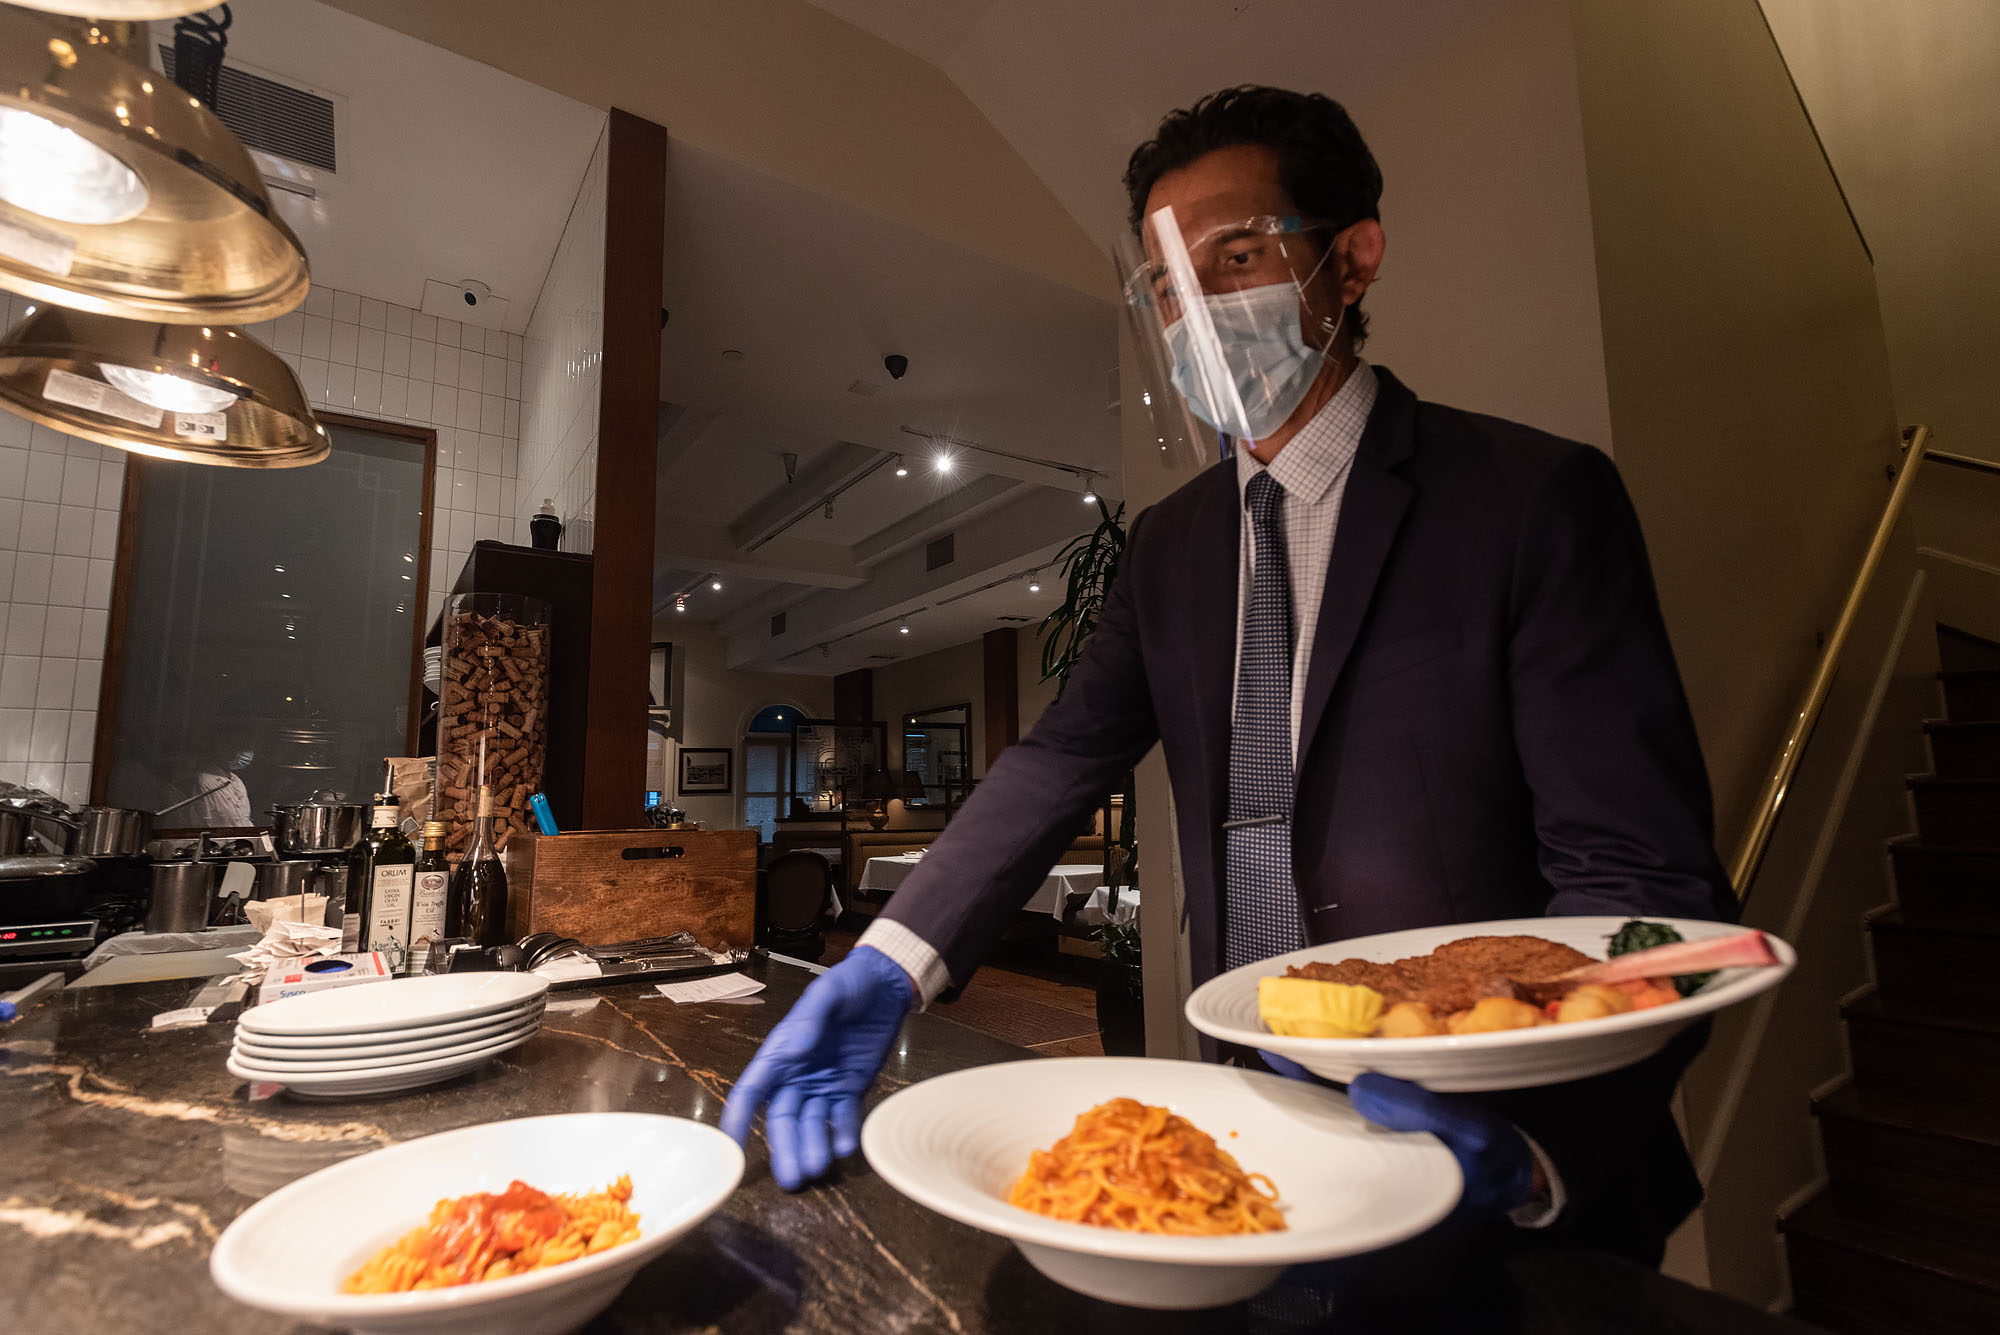 A worker in a suit with a plastic shield and face mask grabs plates of Italian food.